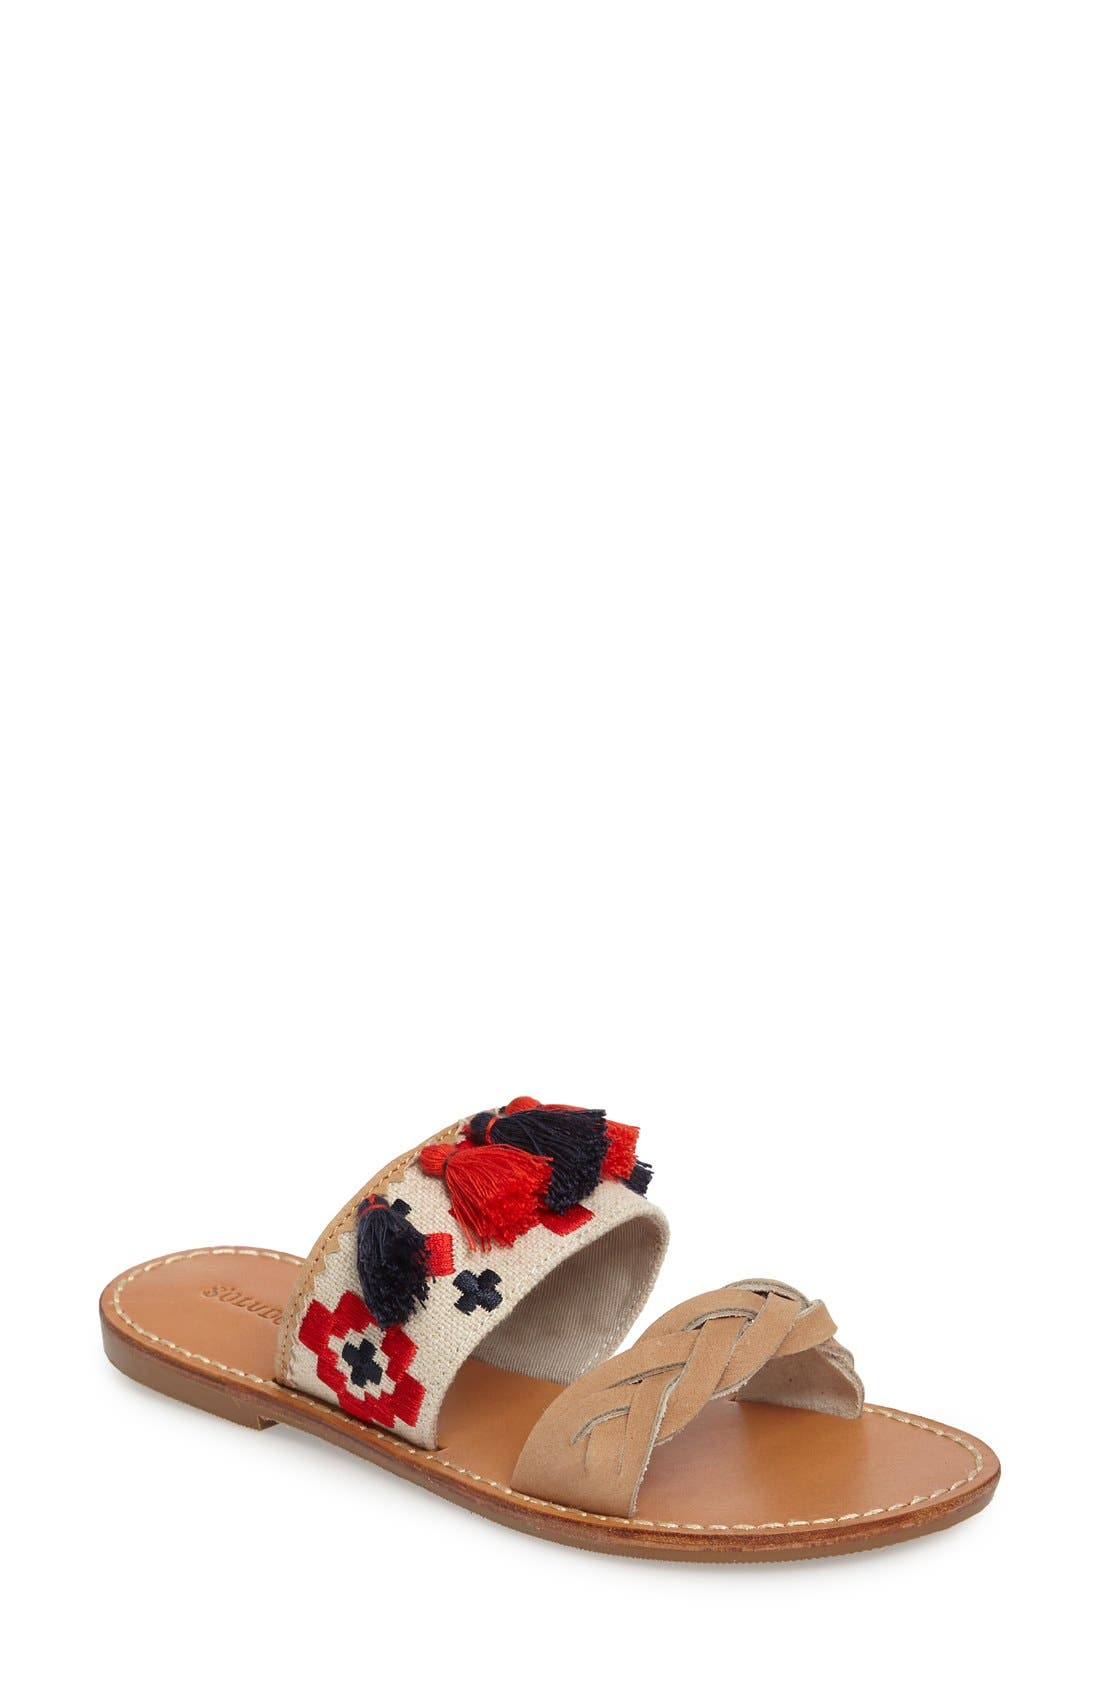 Alternate Image 1 Selected - Soludus Embroidered Slide Sandal (Women)